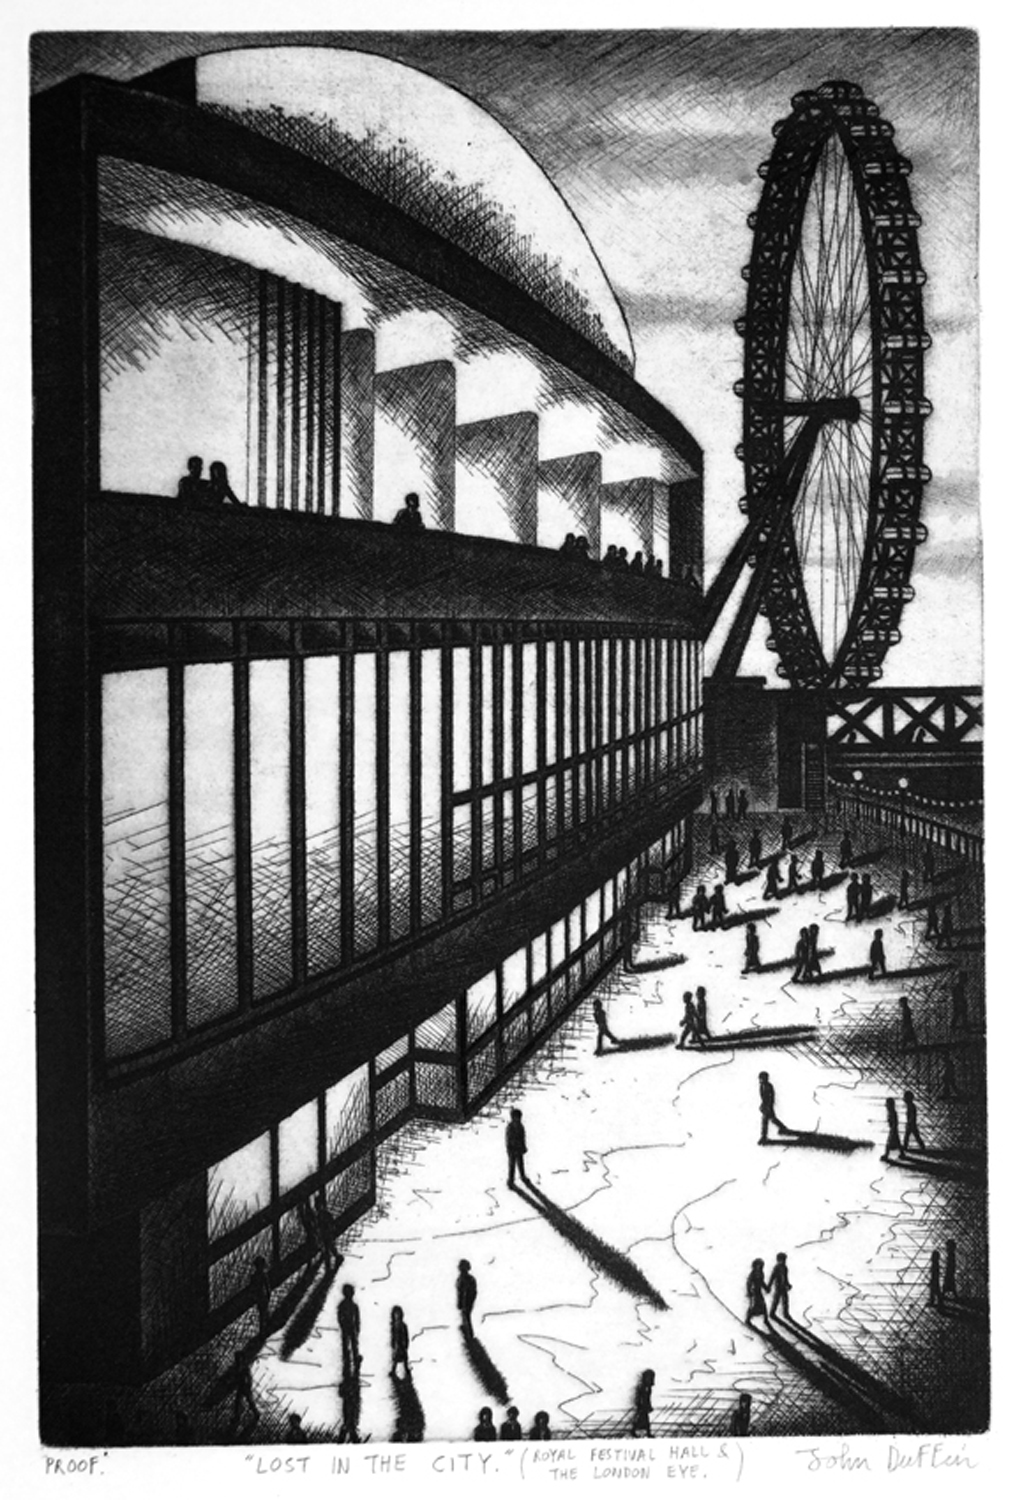 Lost in the City (Royal Festival Hall & The London Eye)   etching   38 x 25 cm  £195 (unframed)